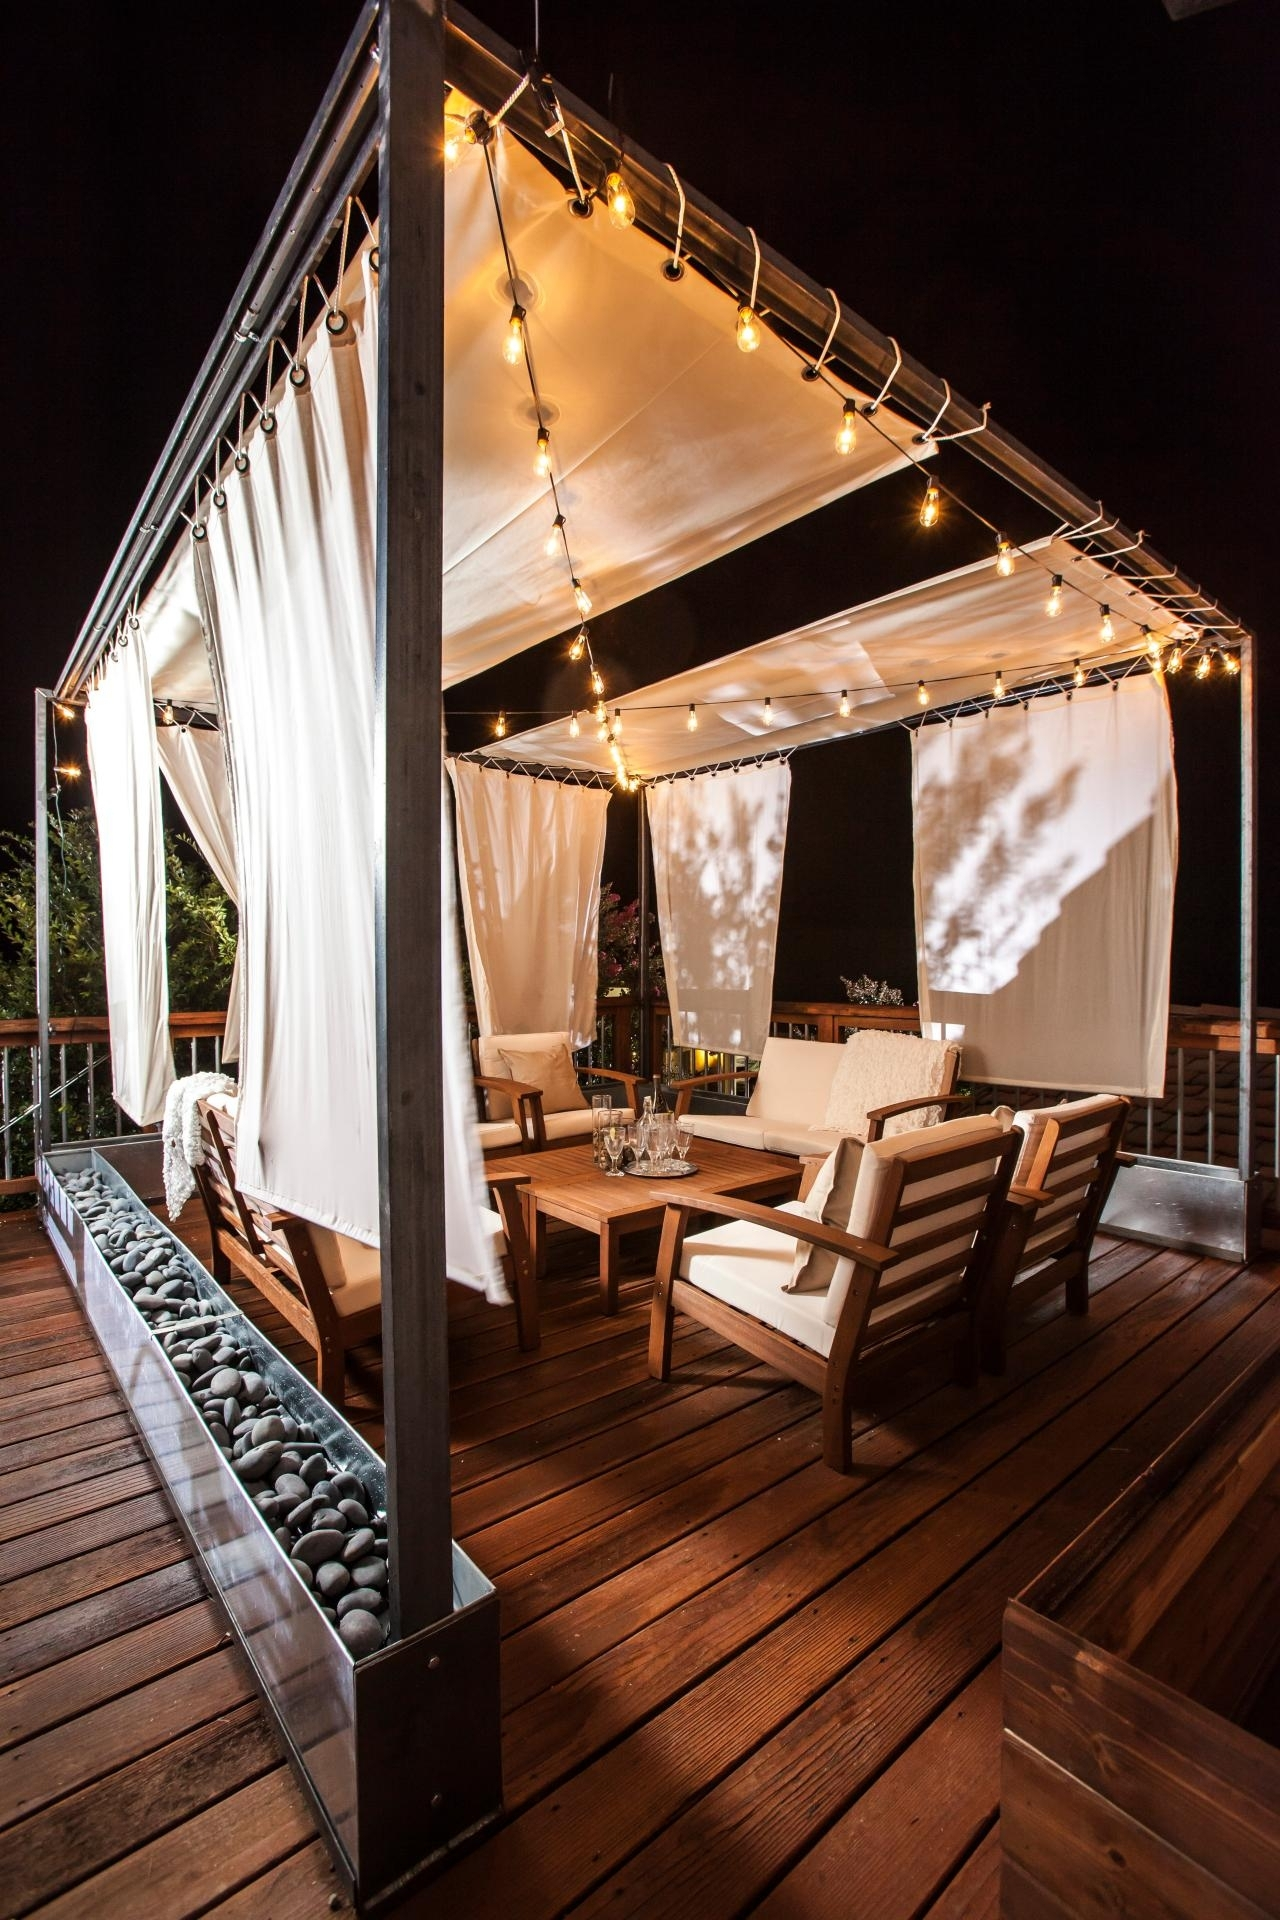 36 Ways To Amp Up Your Outdoor Space With String Lights | Hgtv's Within Outdoor Hanging Gazebo Lights (View 7 of 15)